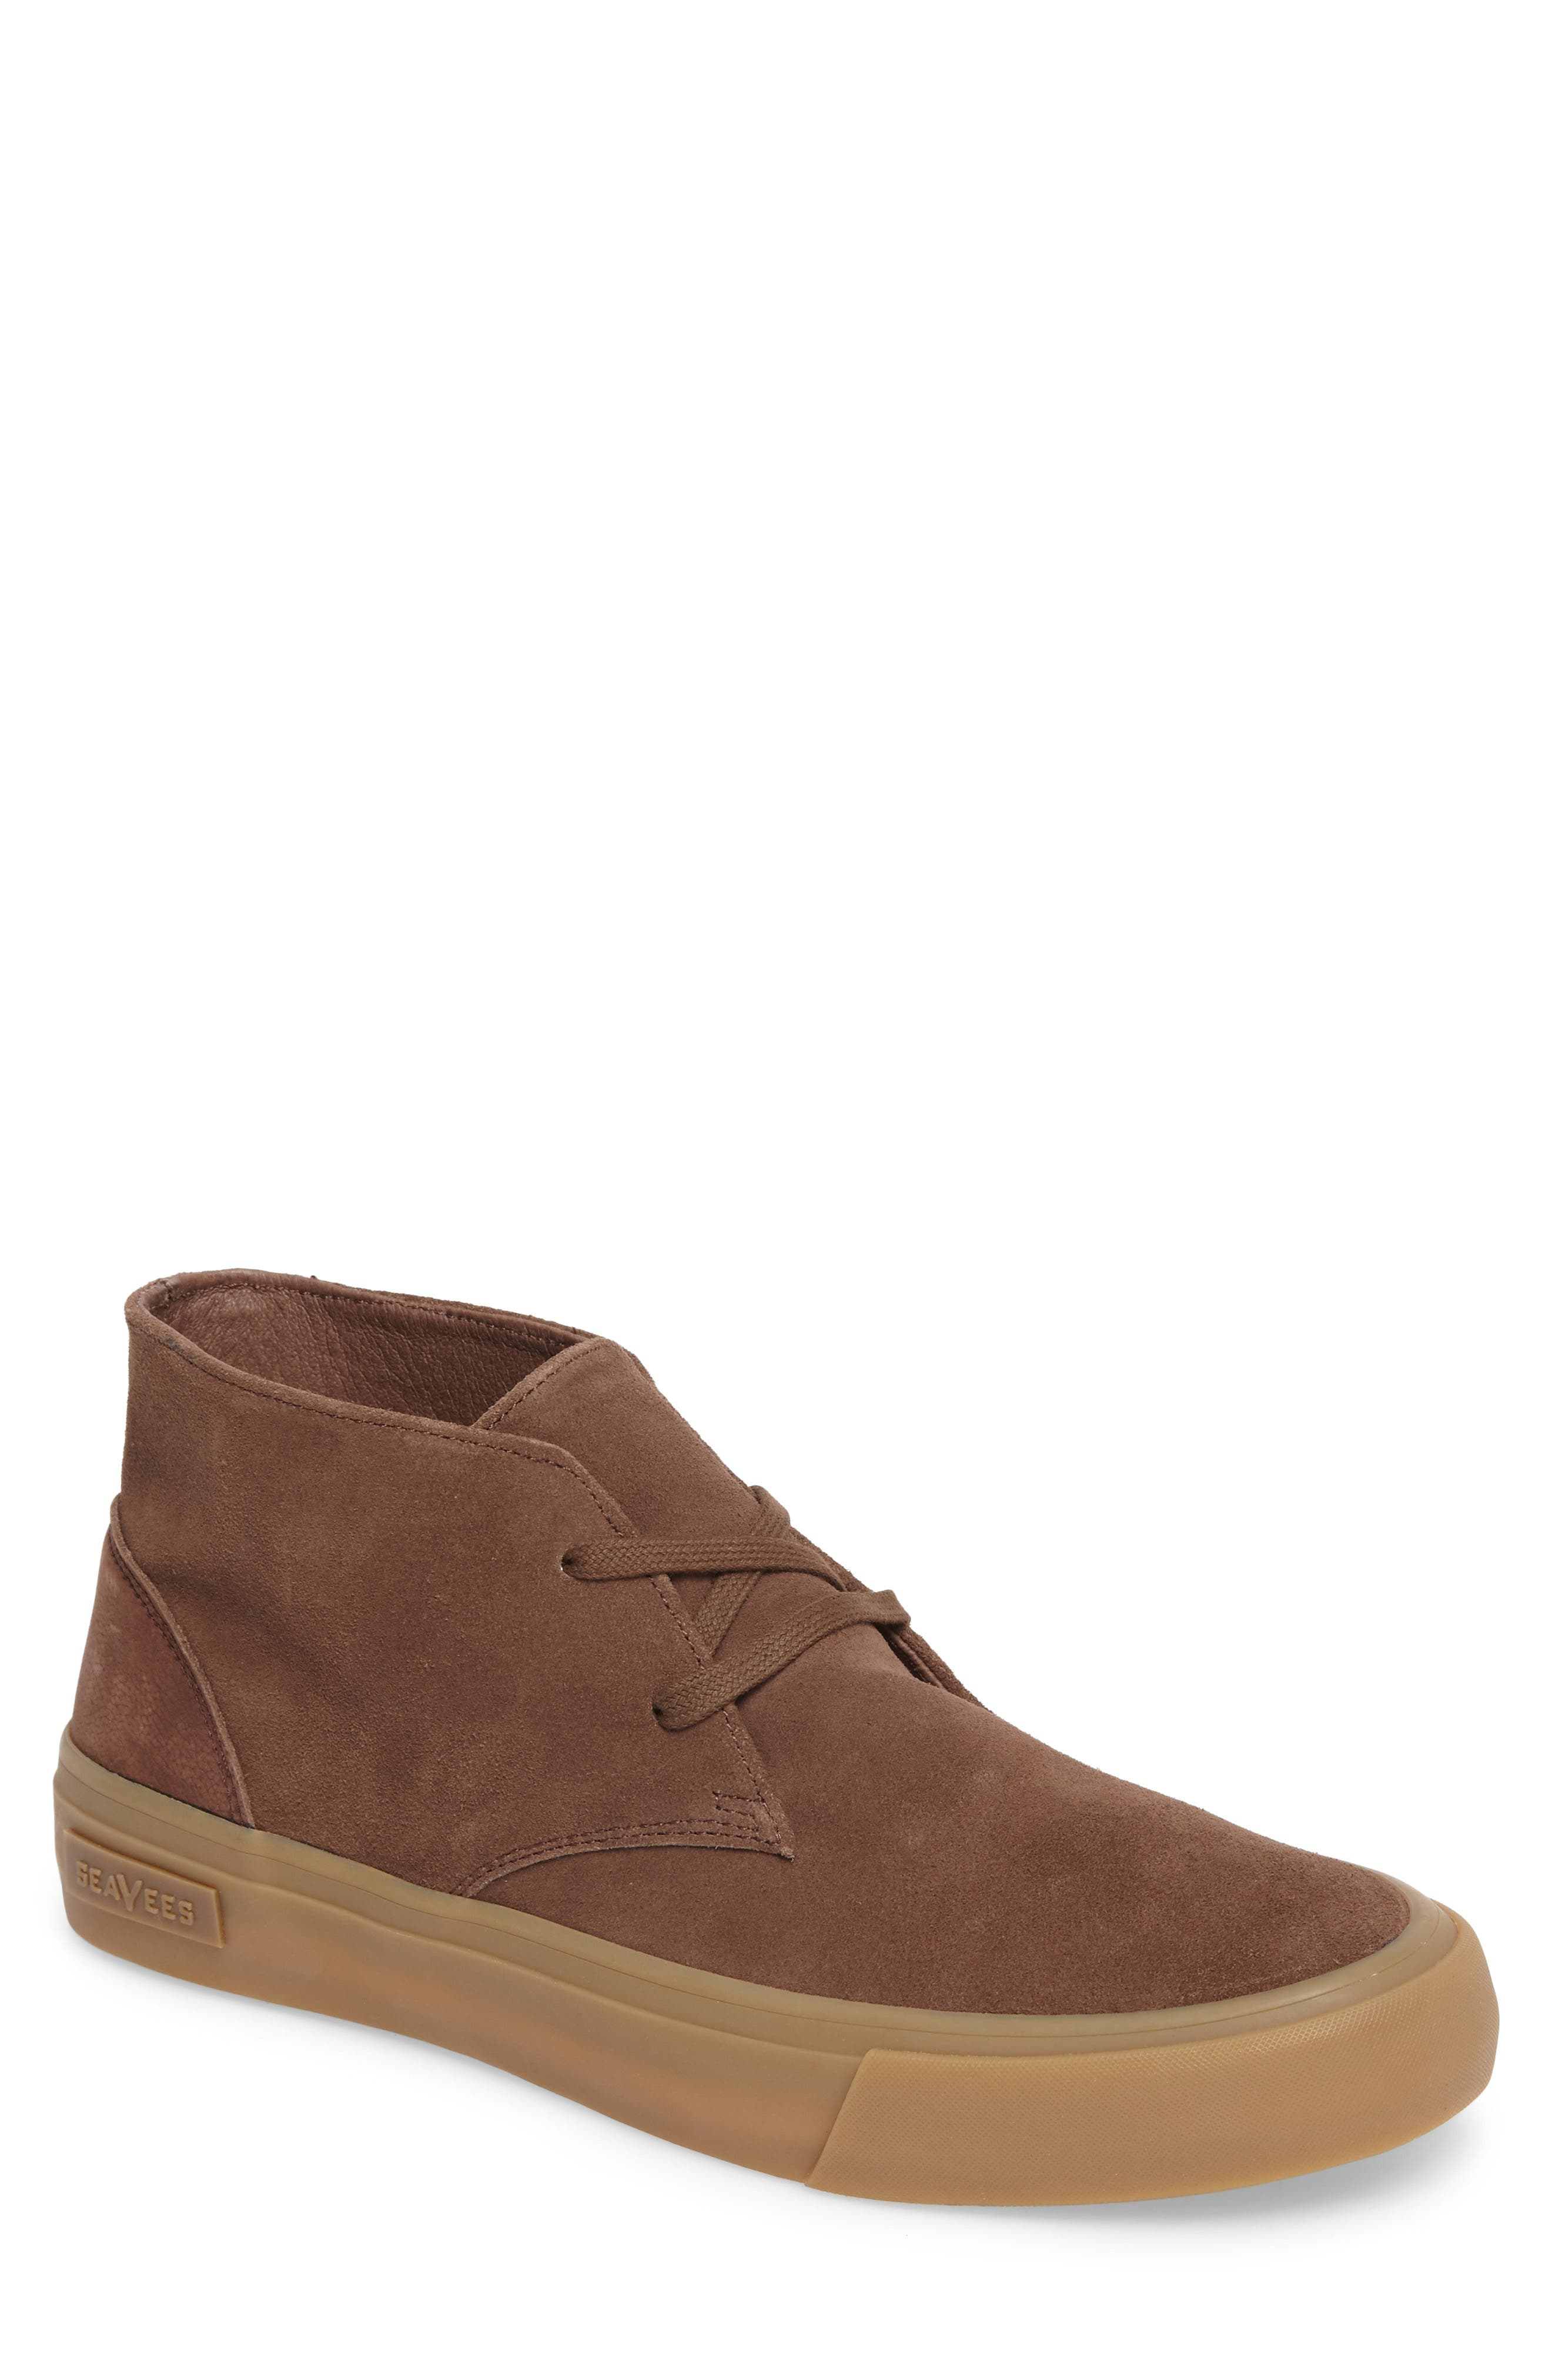 Alternate Image 1 Selected - Seavees Maslon Chukka Boot (Men)